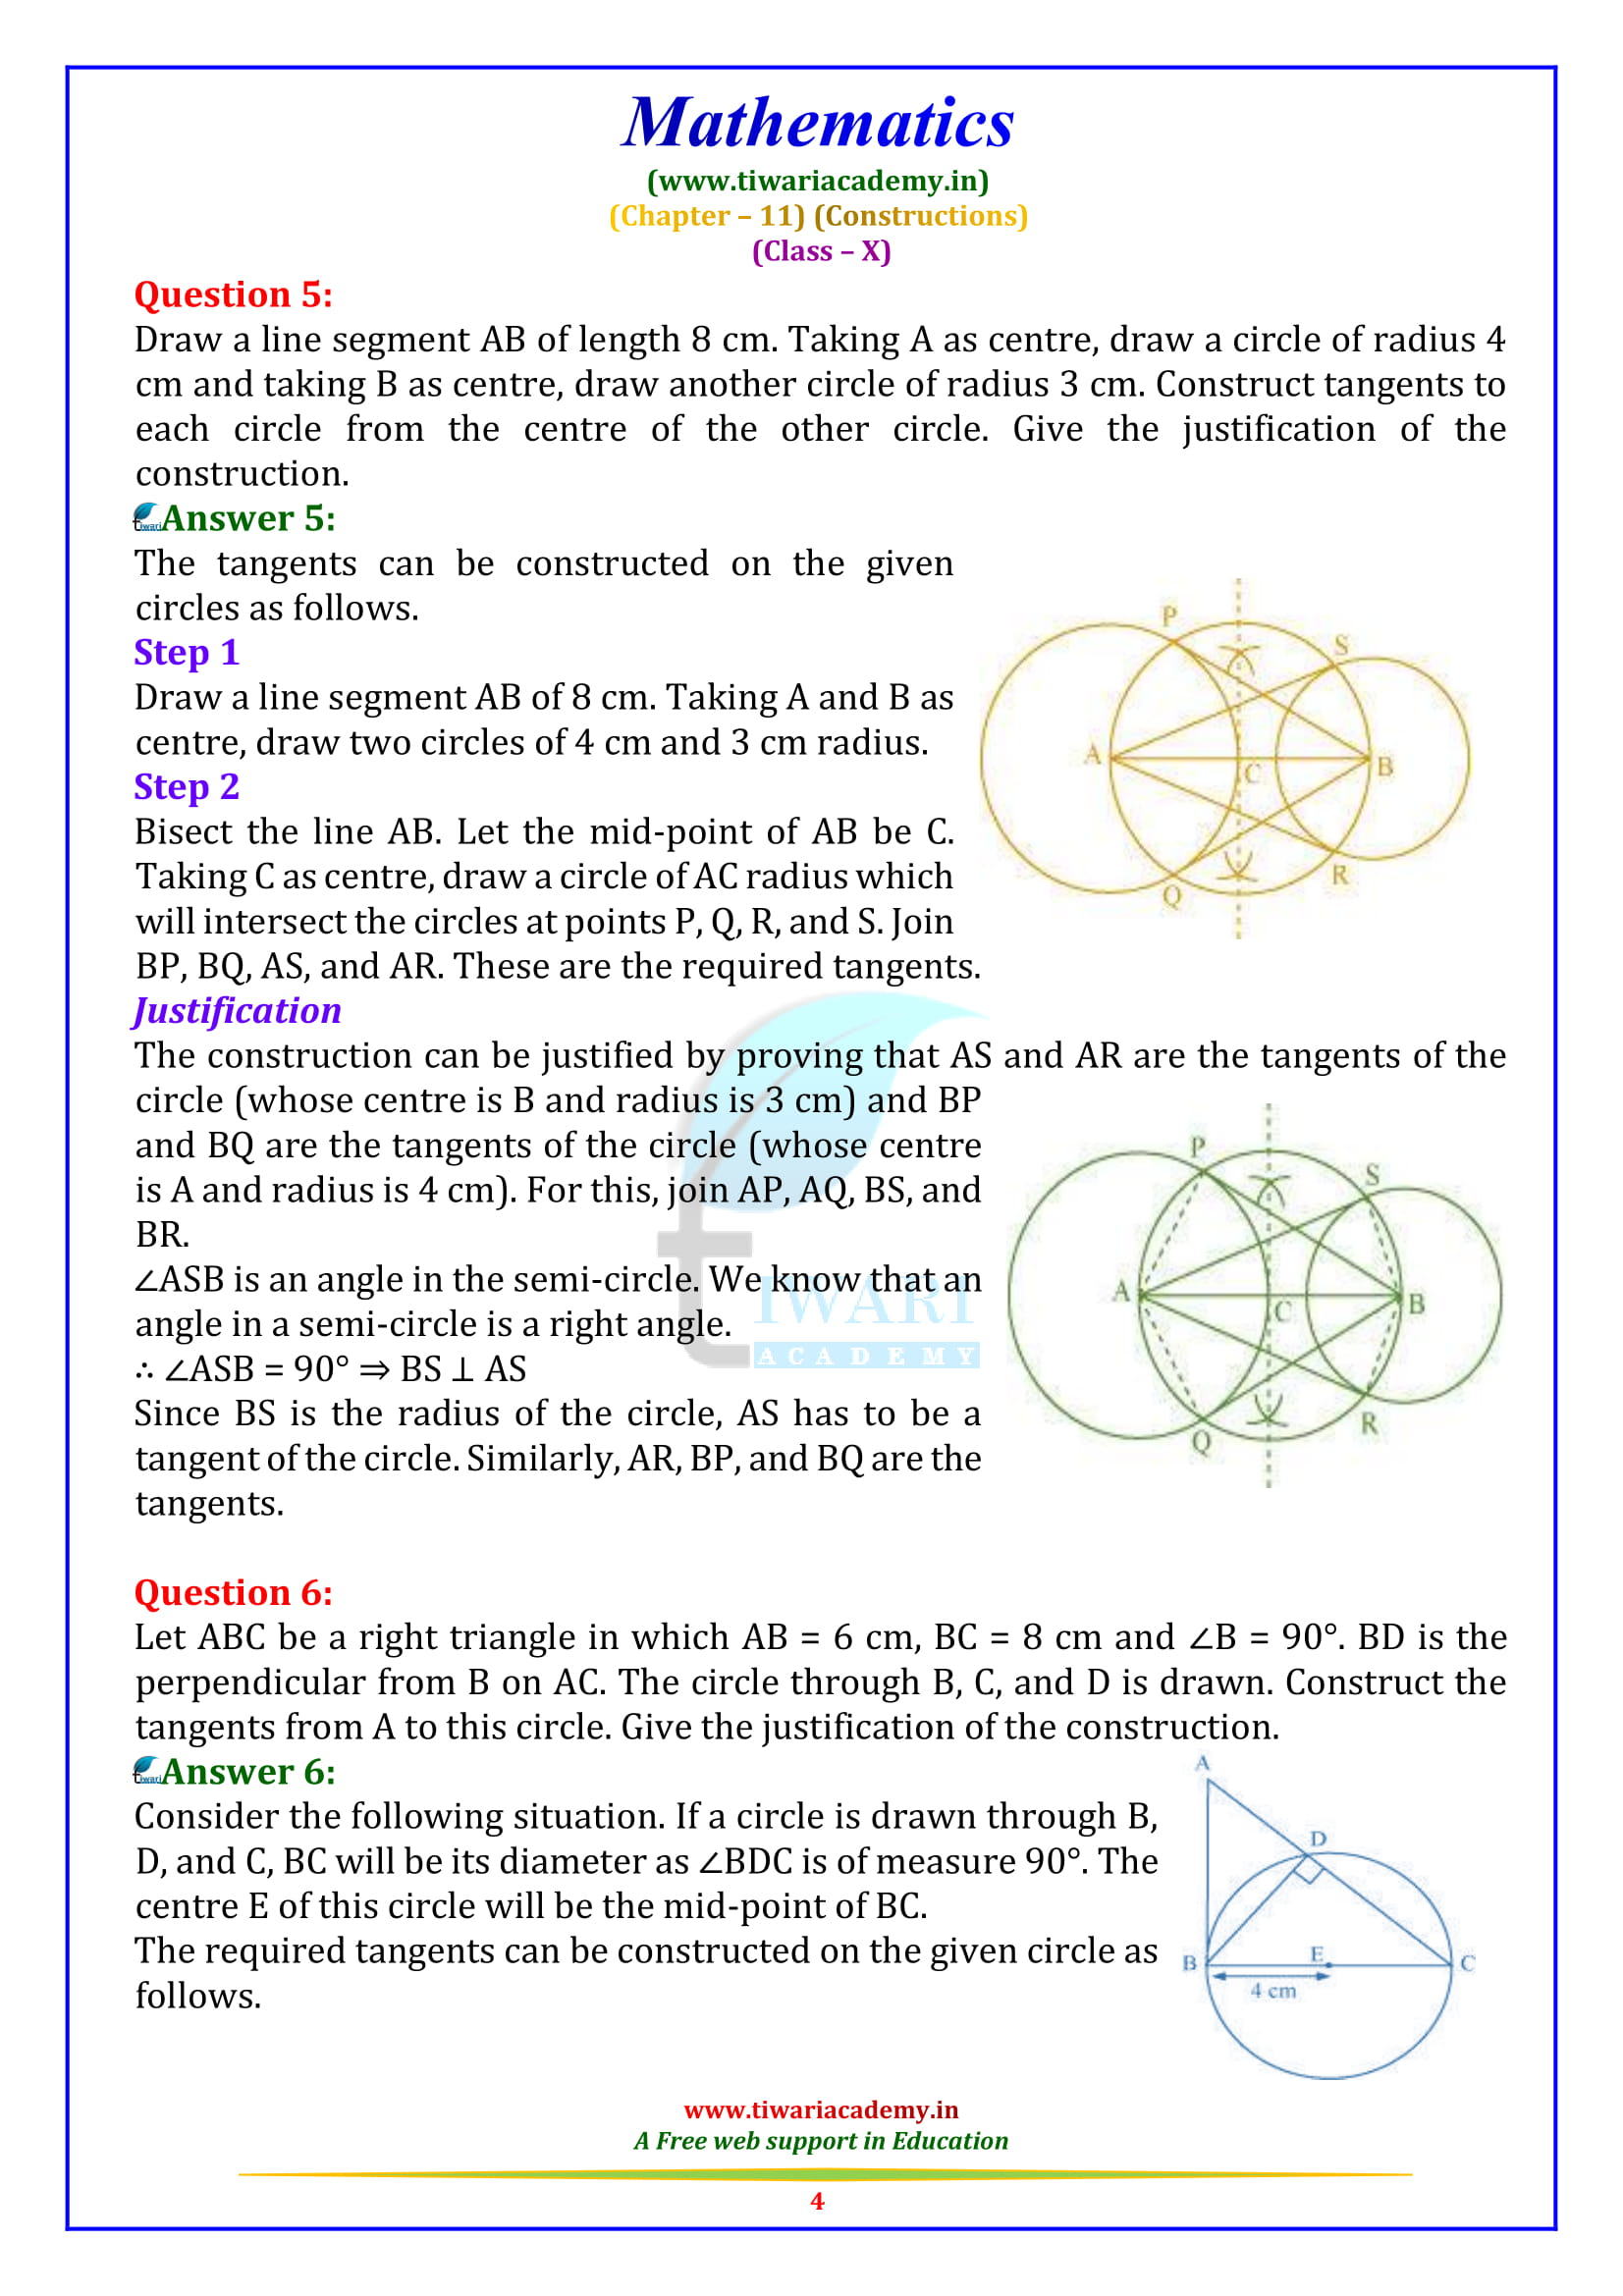 NCERT Solutions for Class 10 Maths Chapter 11 Exercise 11.2 Constructions updated 2019